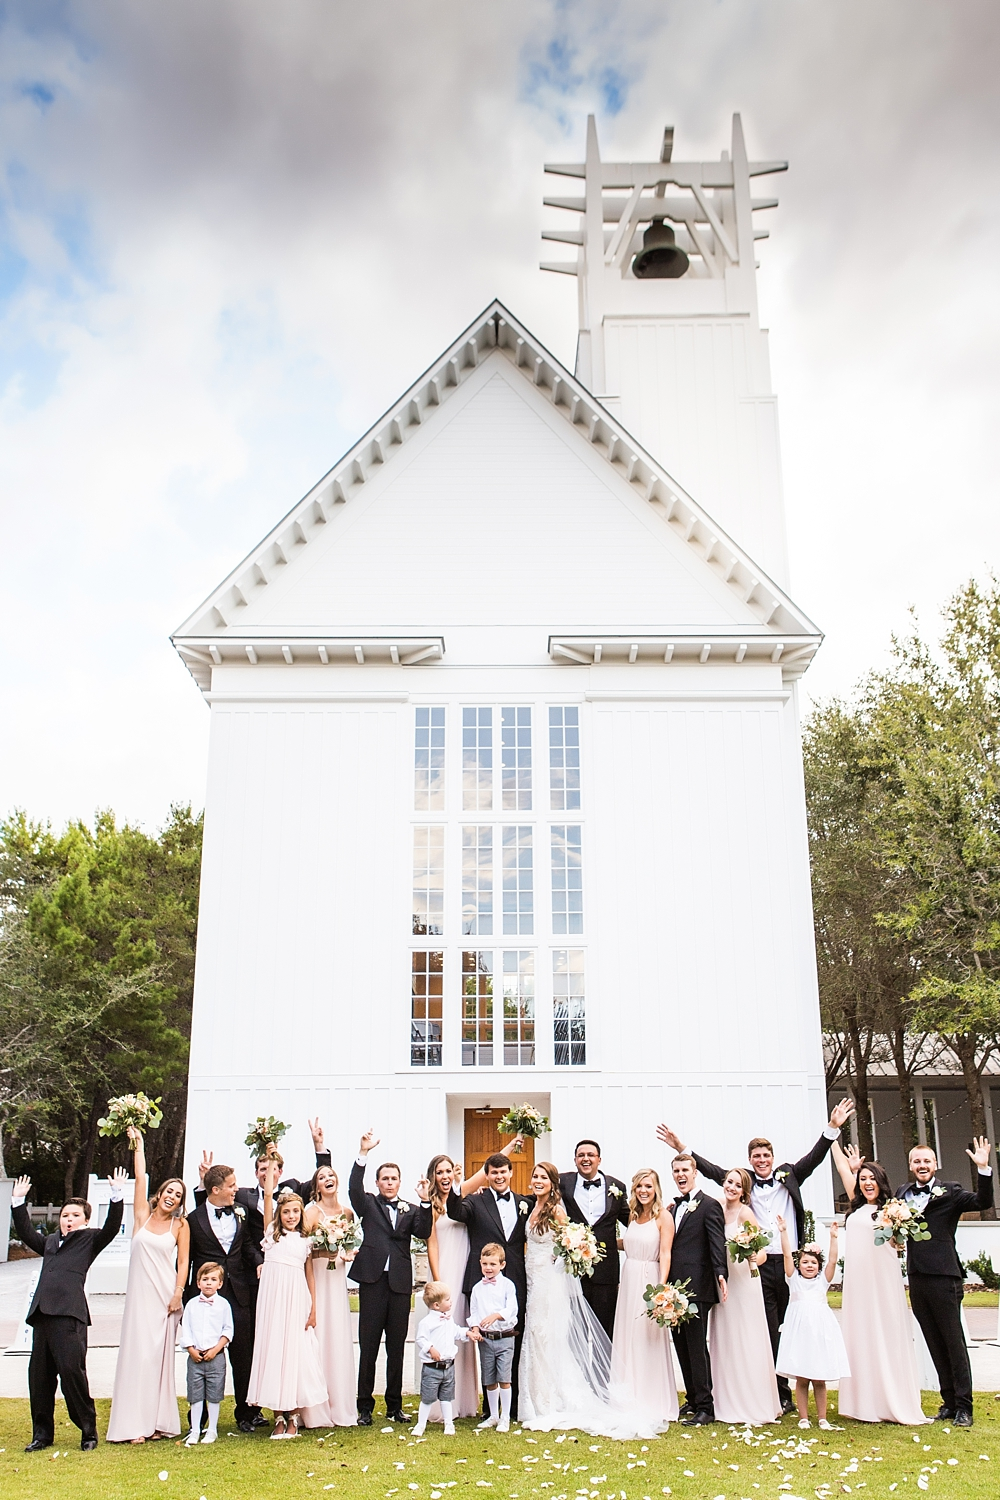 Alys Beach Wedding Seaside 30 A Vue Photography Its S Thing Events0057